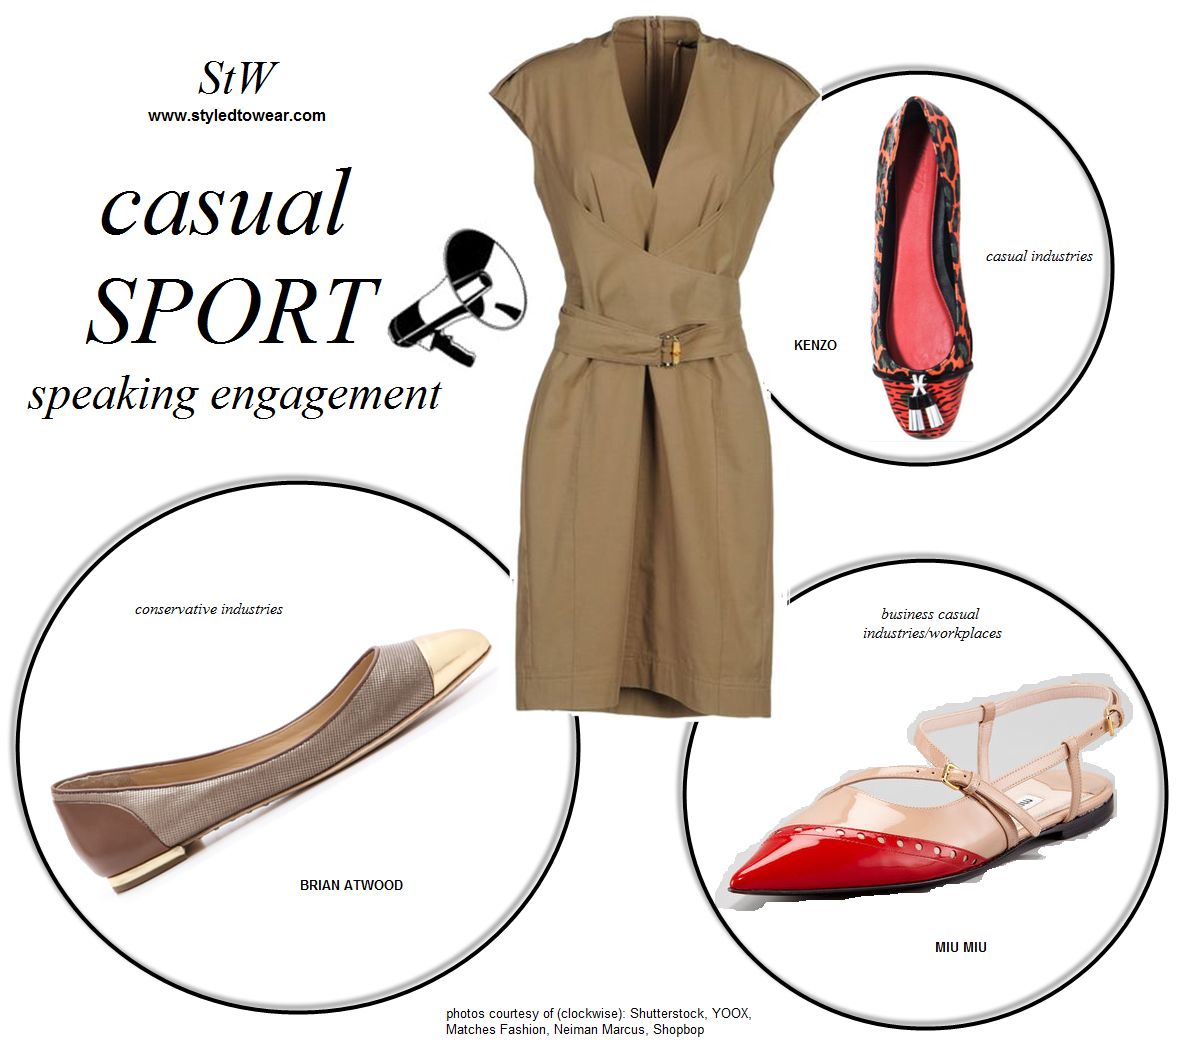 What to wear for a panel discussion that requires casual sport wear